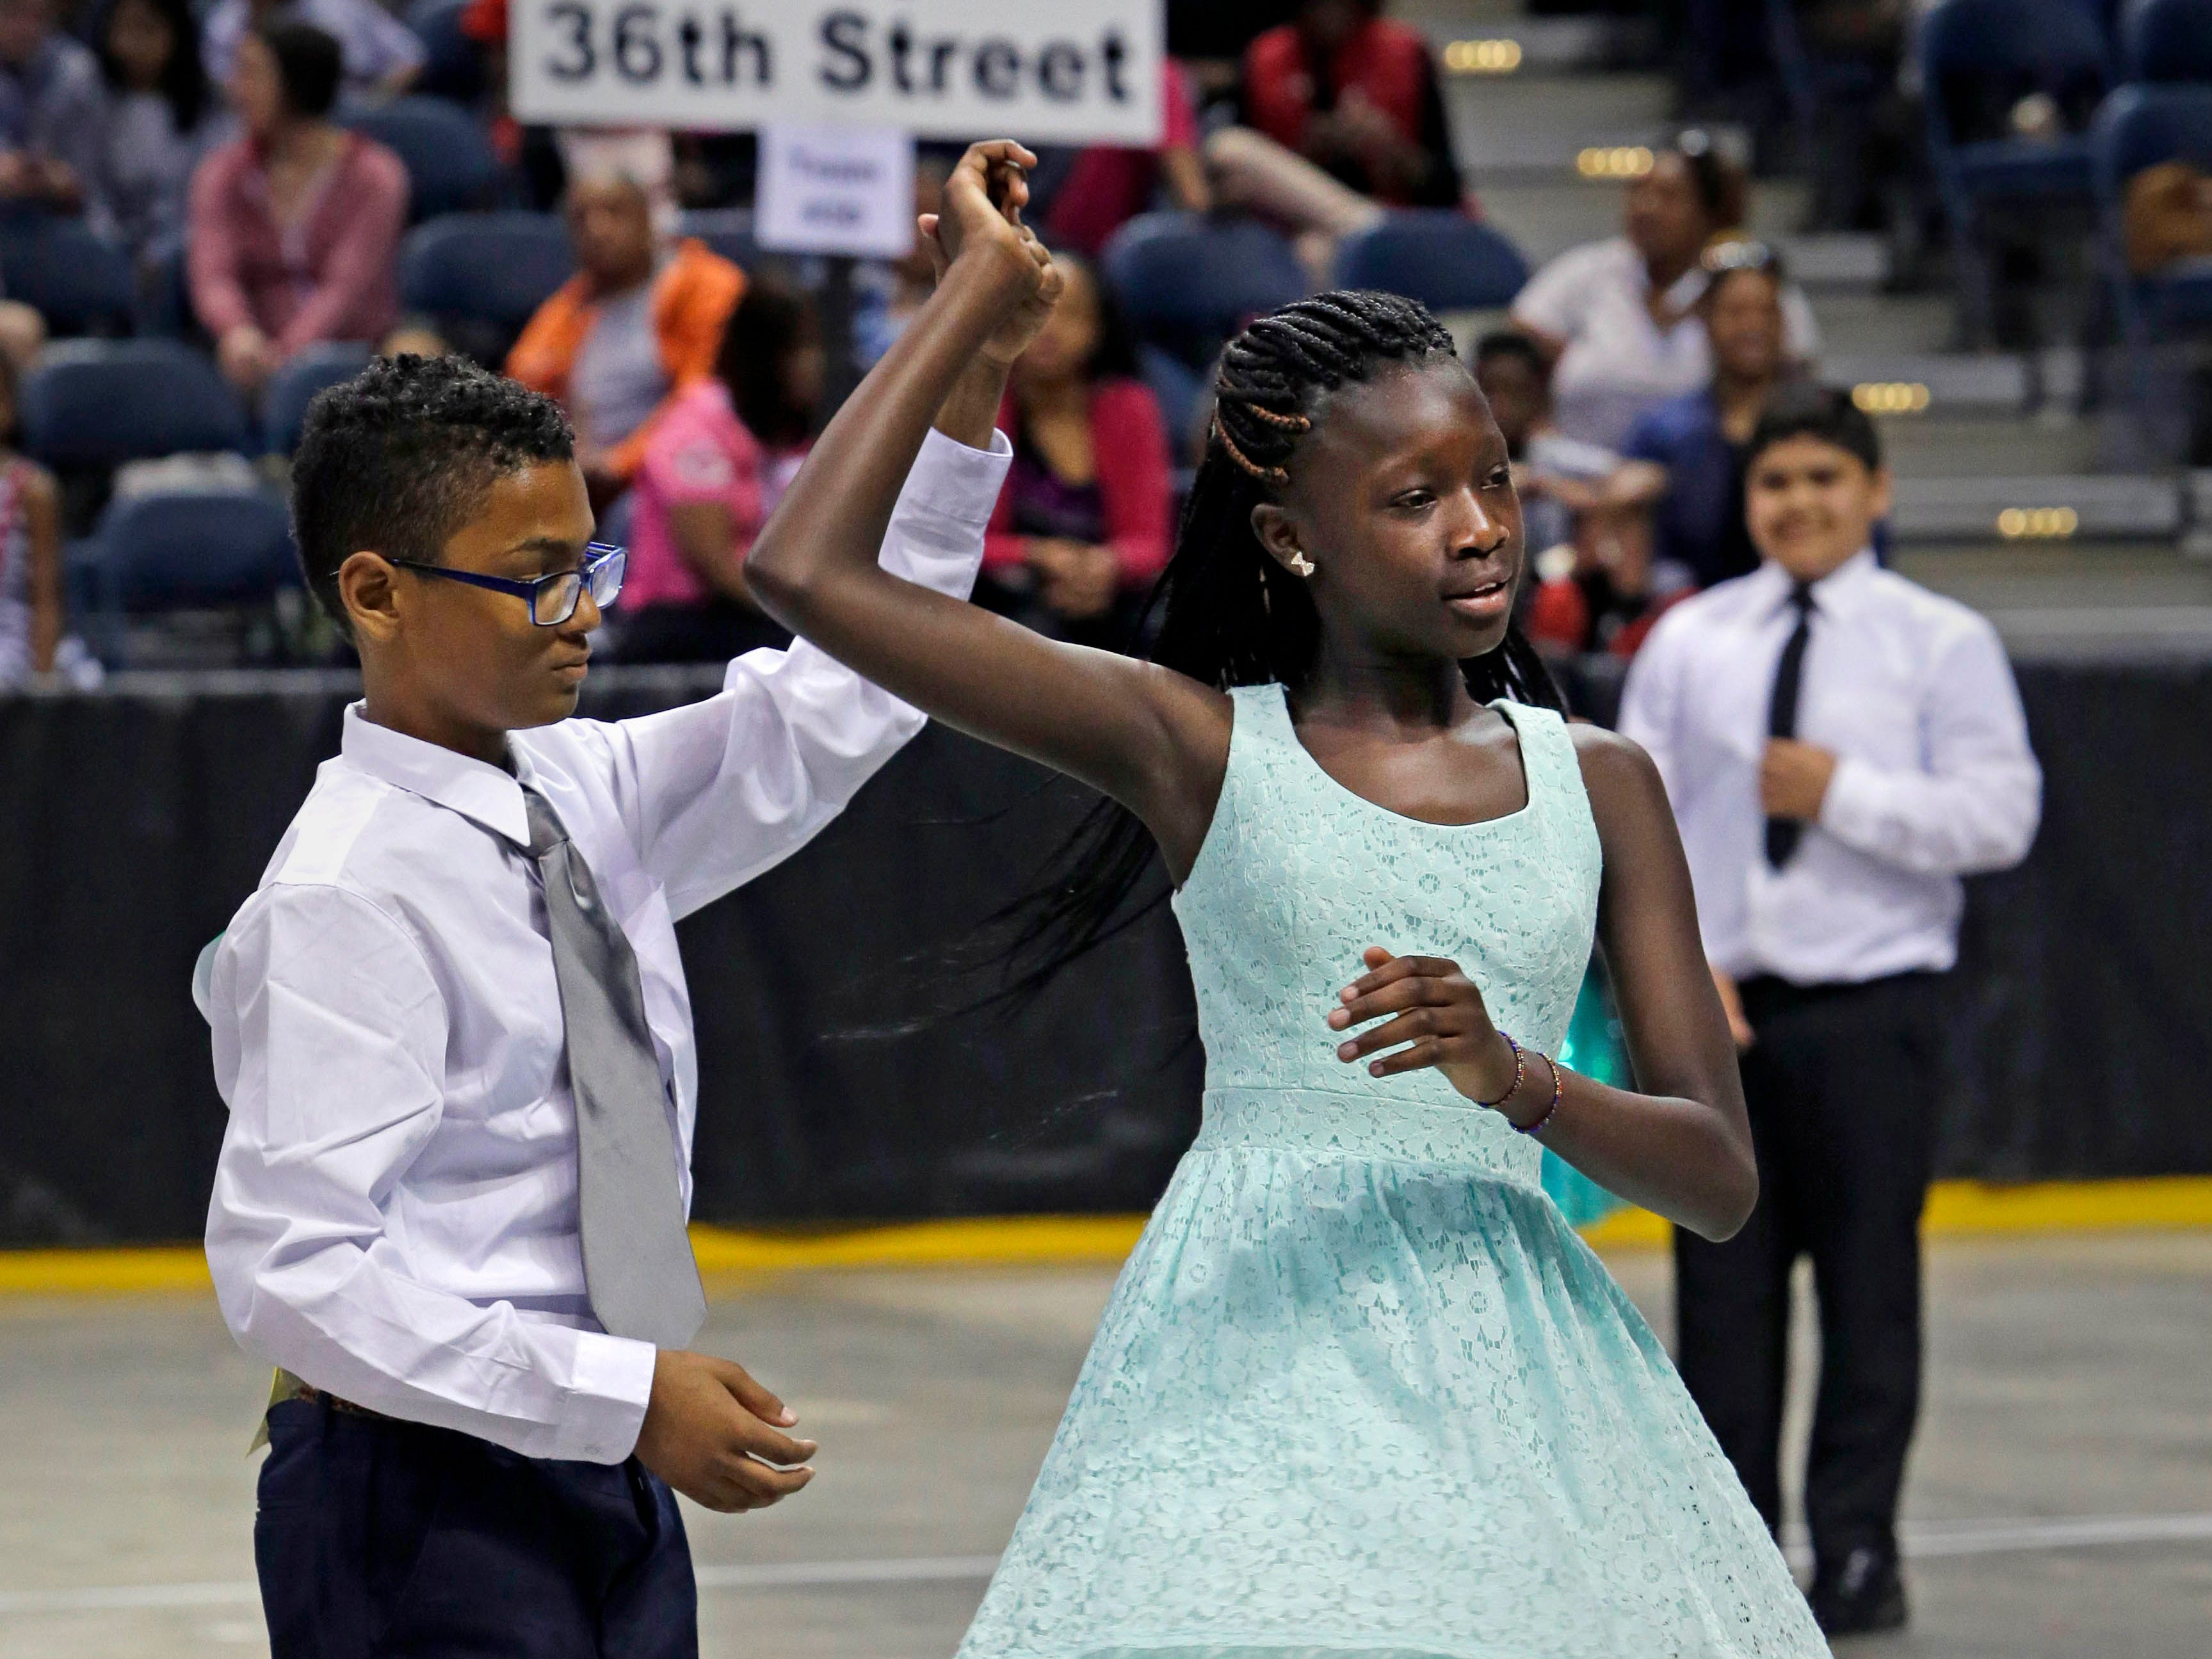 2015: Jonathan Crumb and Fanta Kromah, from Luther Burbank Elementary School, join about 2,000 other local students from 45 area schools performed who competed in the annual Mad Hot Ballroom and Tap competition at the Bradley Center.